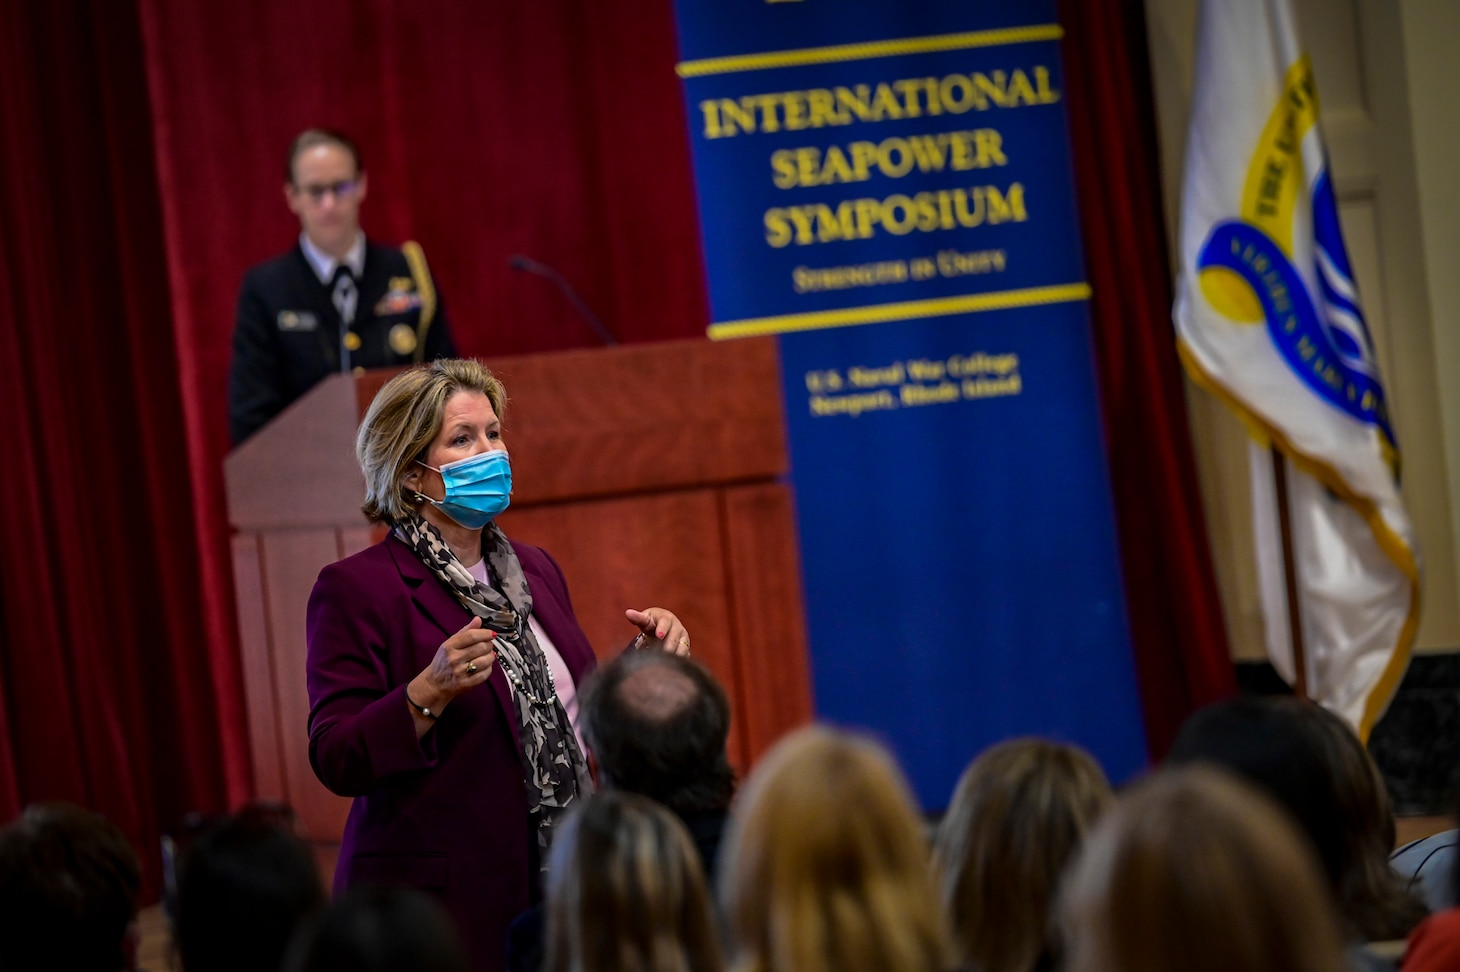 """A woman wearing a blue face mask in a red blazer address a crowd in an auditorium, while another woman in uniform stands behind a podium. A banner in the background reads """"International Seapower Symposium."""""""